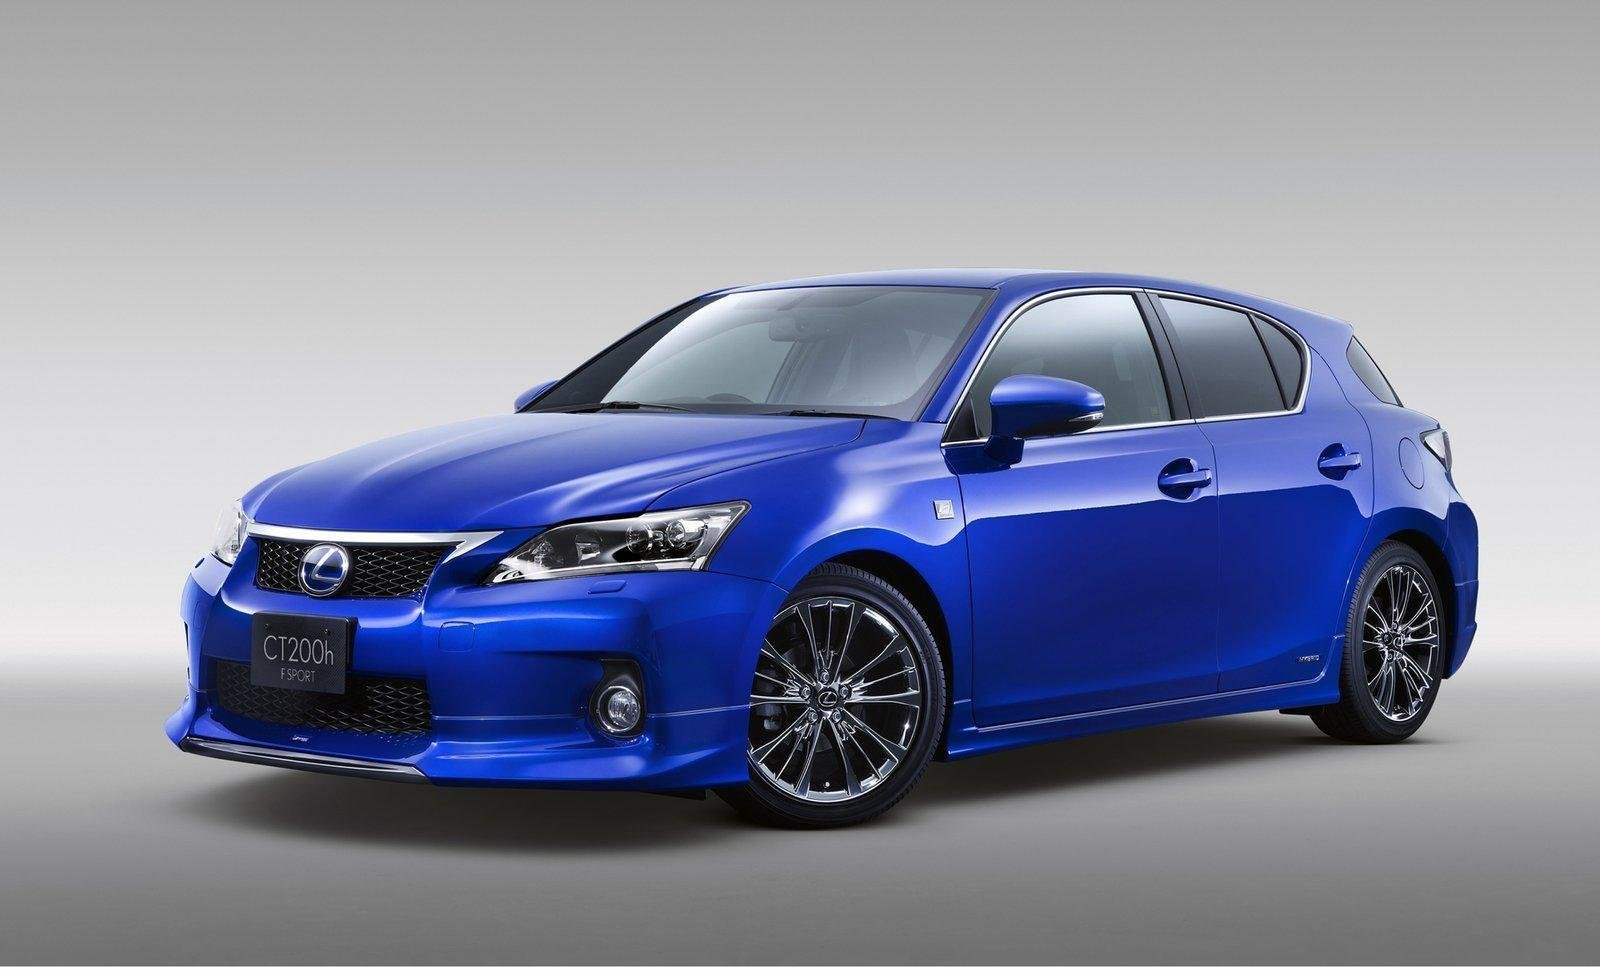 2012 lexus ct 200h f sport package picture 412646 car. Black Bedroom Furniture Sets. Home Design Ideas